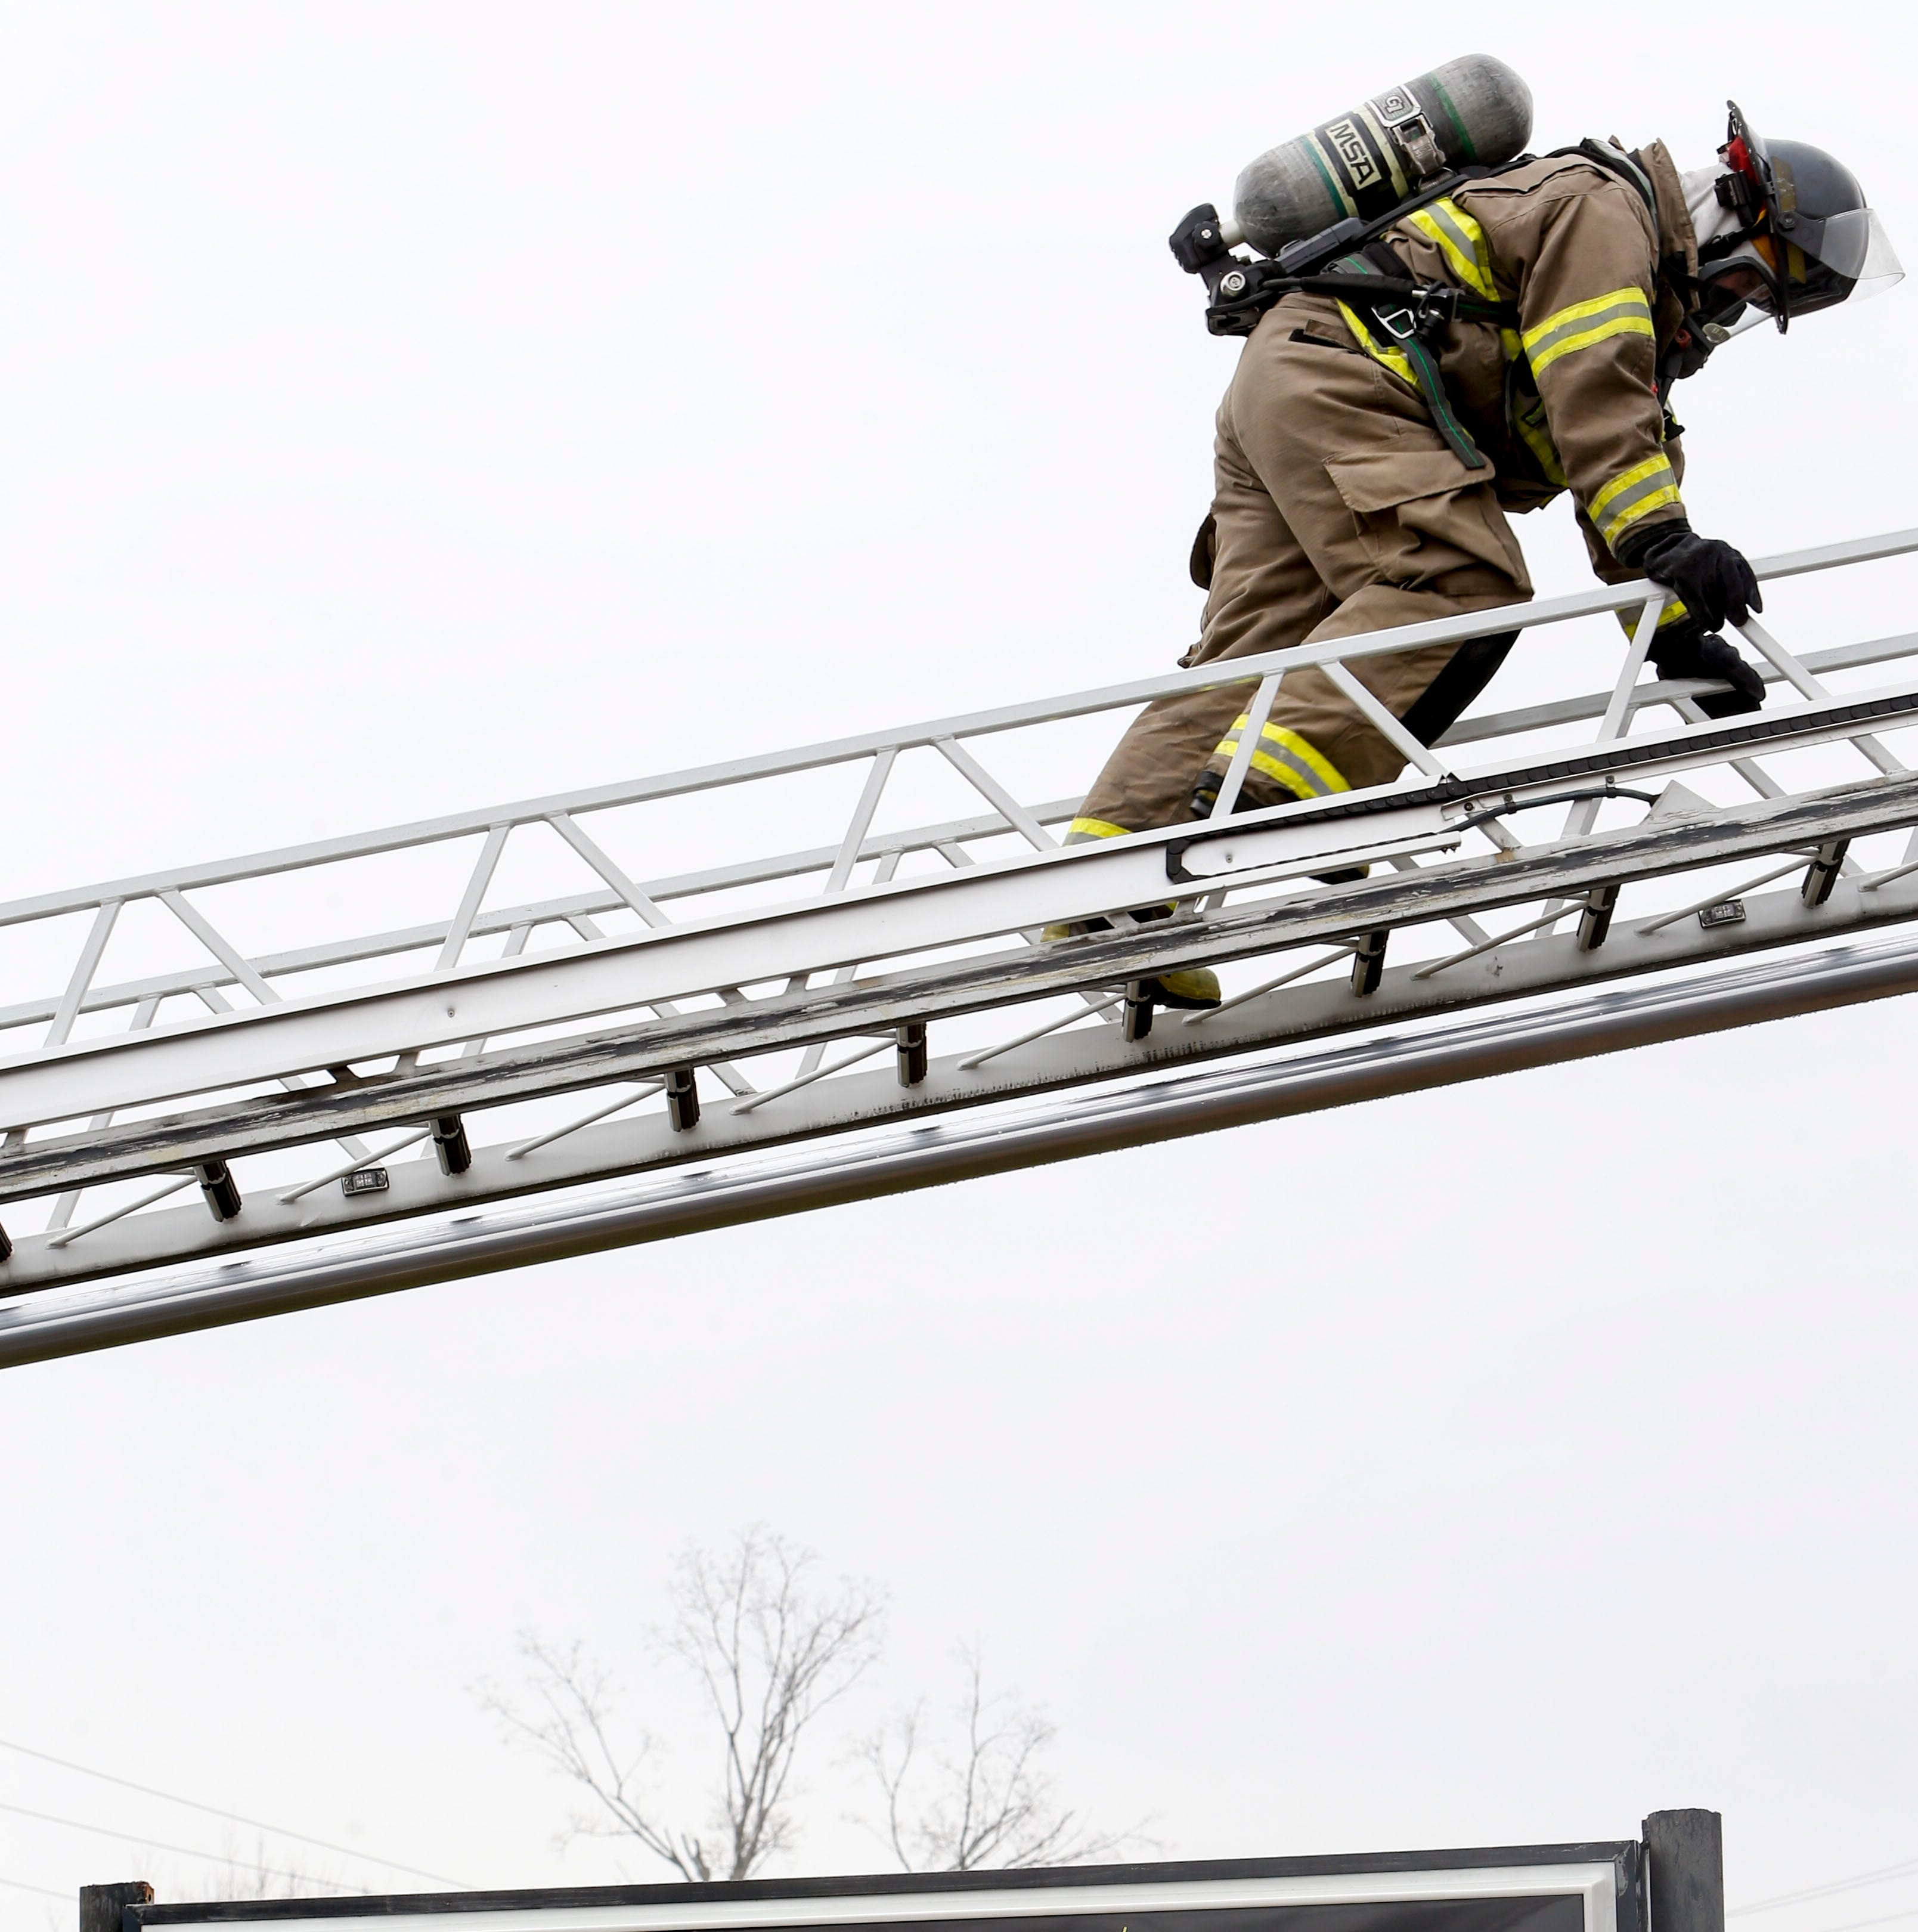 Fire breaks out at indoor shooting range in Clarksville